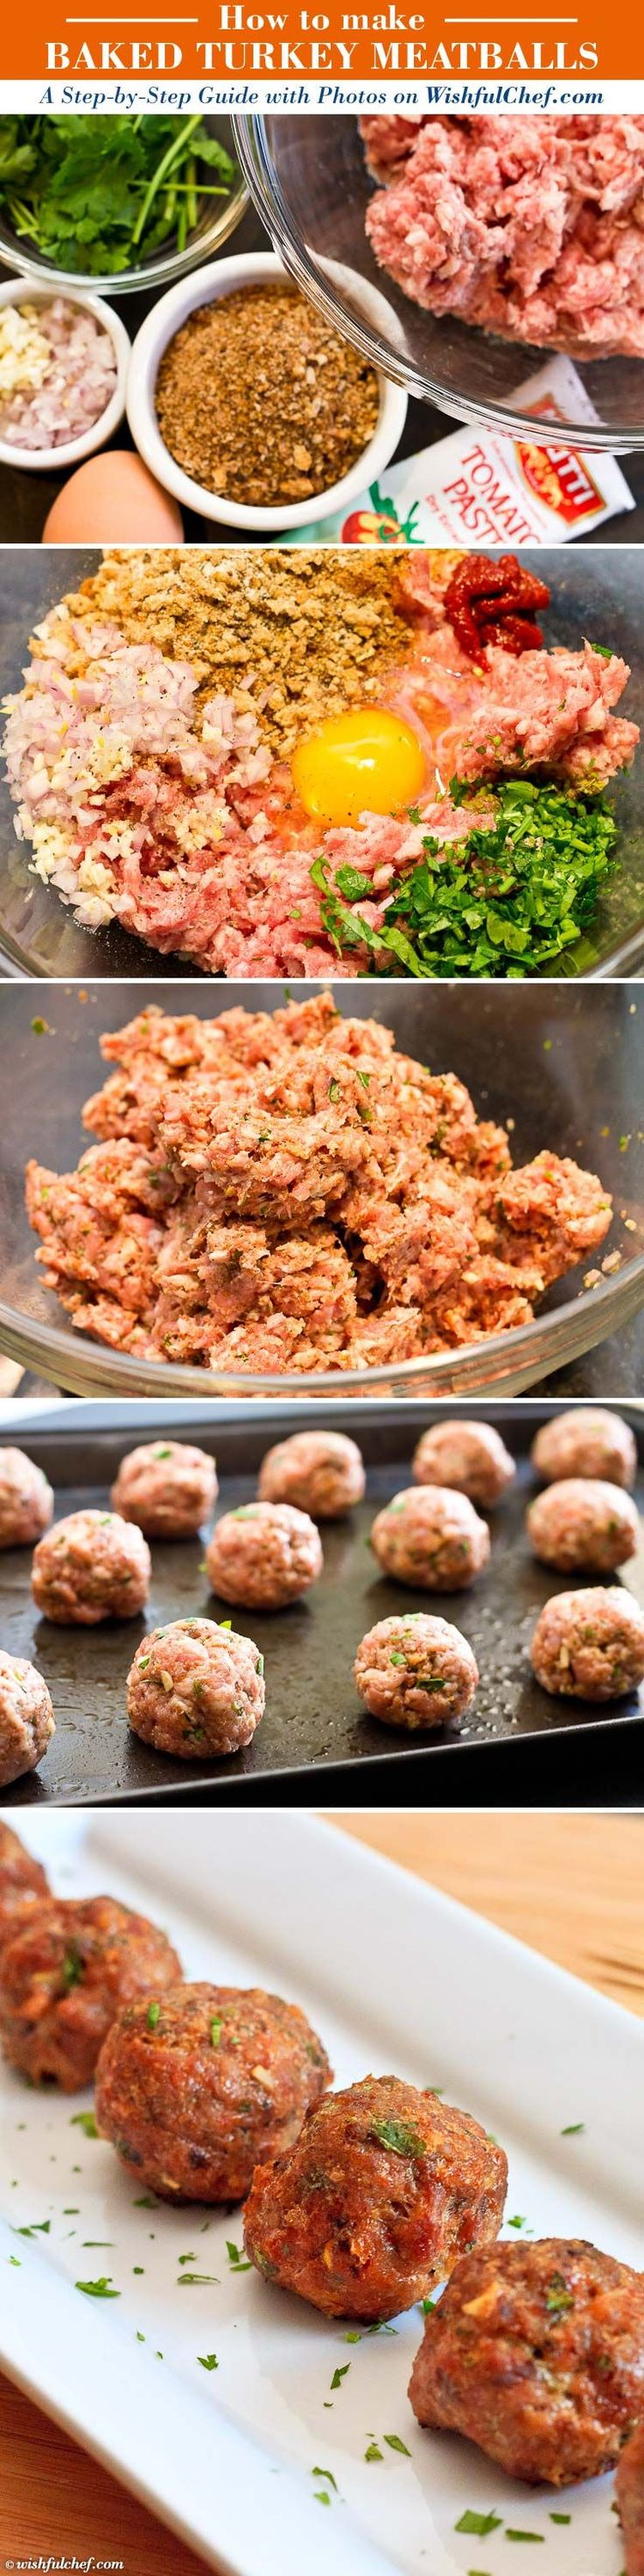 Baked Turkey Meatballs // wishfulchef.com.  - I added fresh Parmesan cheese to this recipe. We loved them and even my 13 month old daughter gave lots of mmmms!